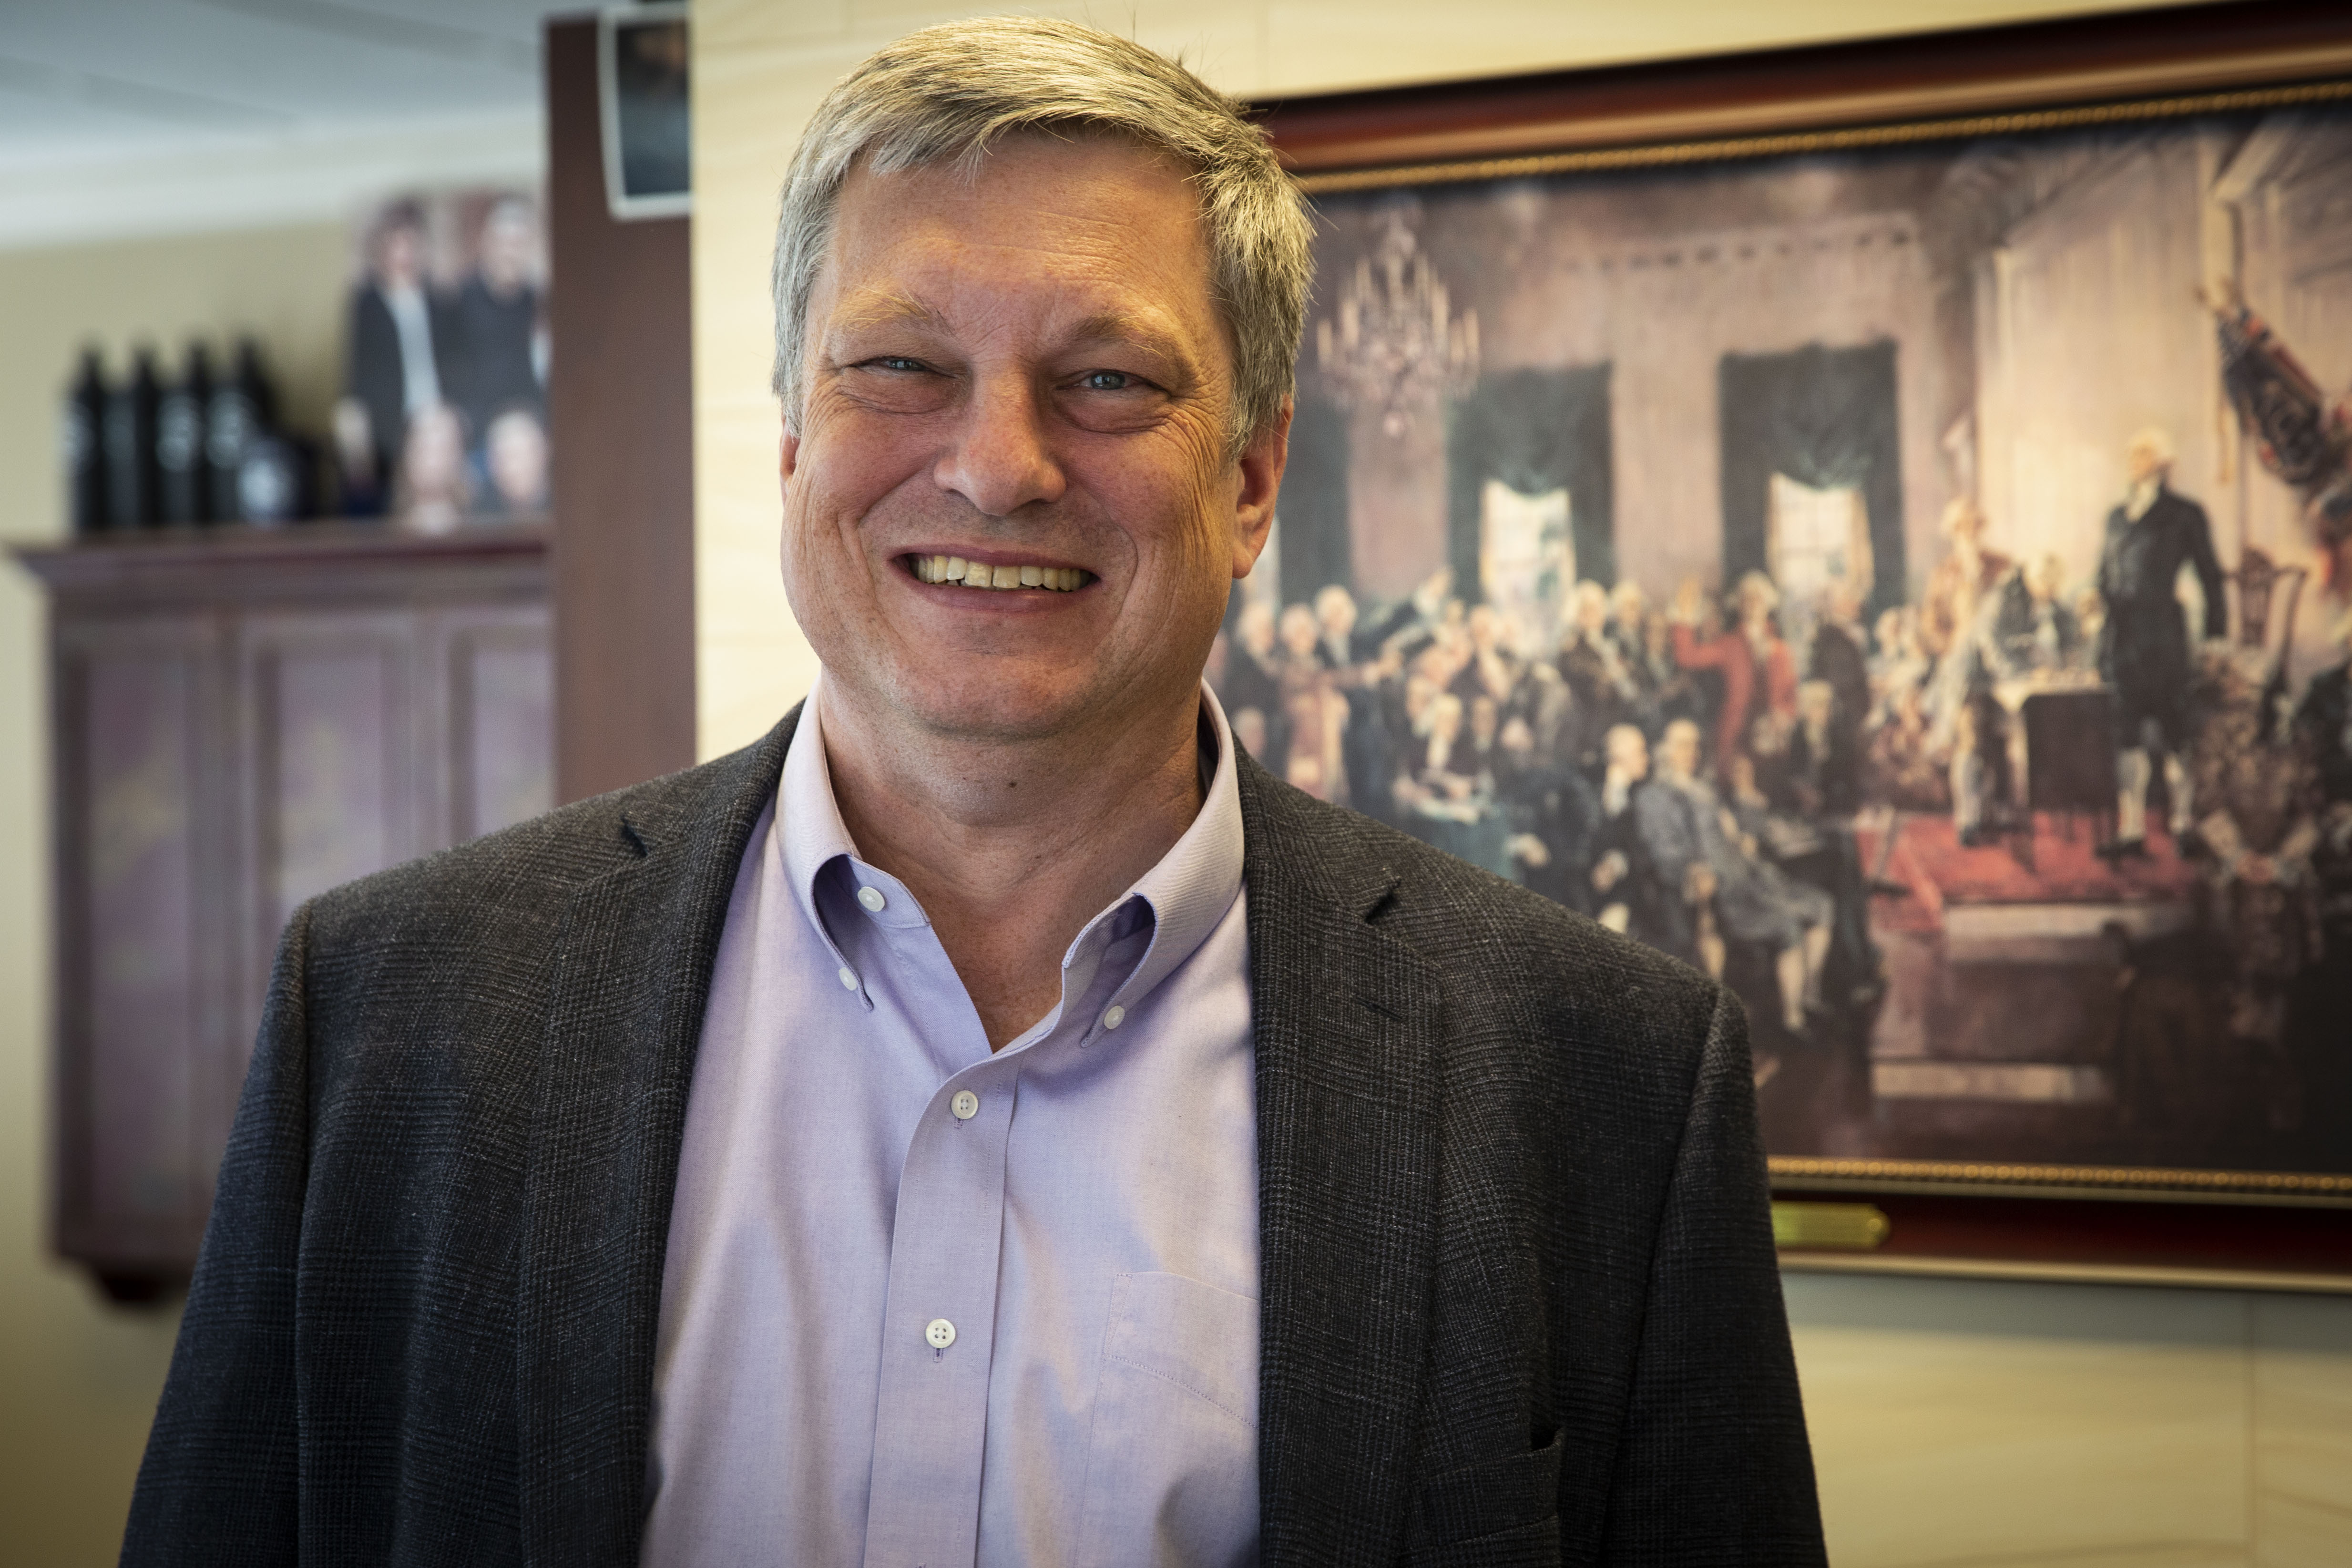 Photo: Secretary of State Wayne Williams Oct 2018 | Minor